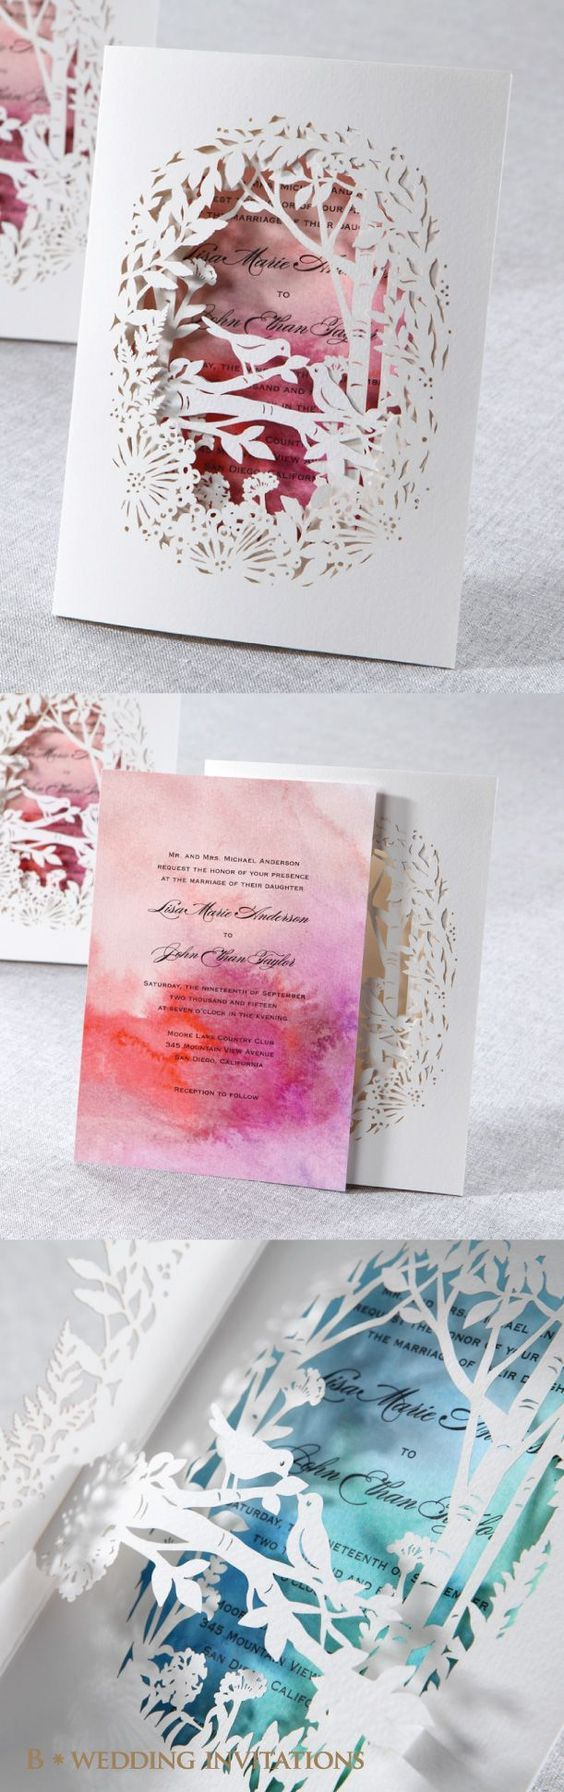 12 Best Invitaciones Images On Pinterest Wedding Stationary